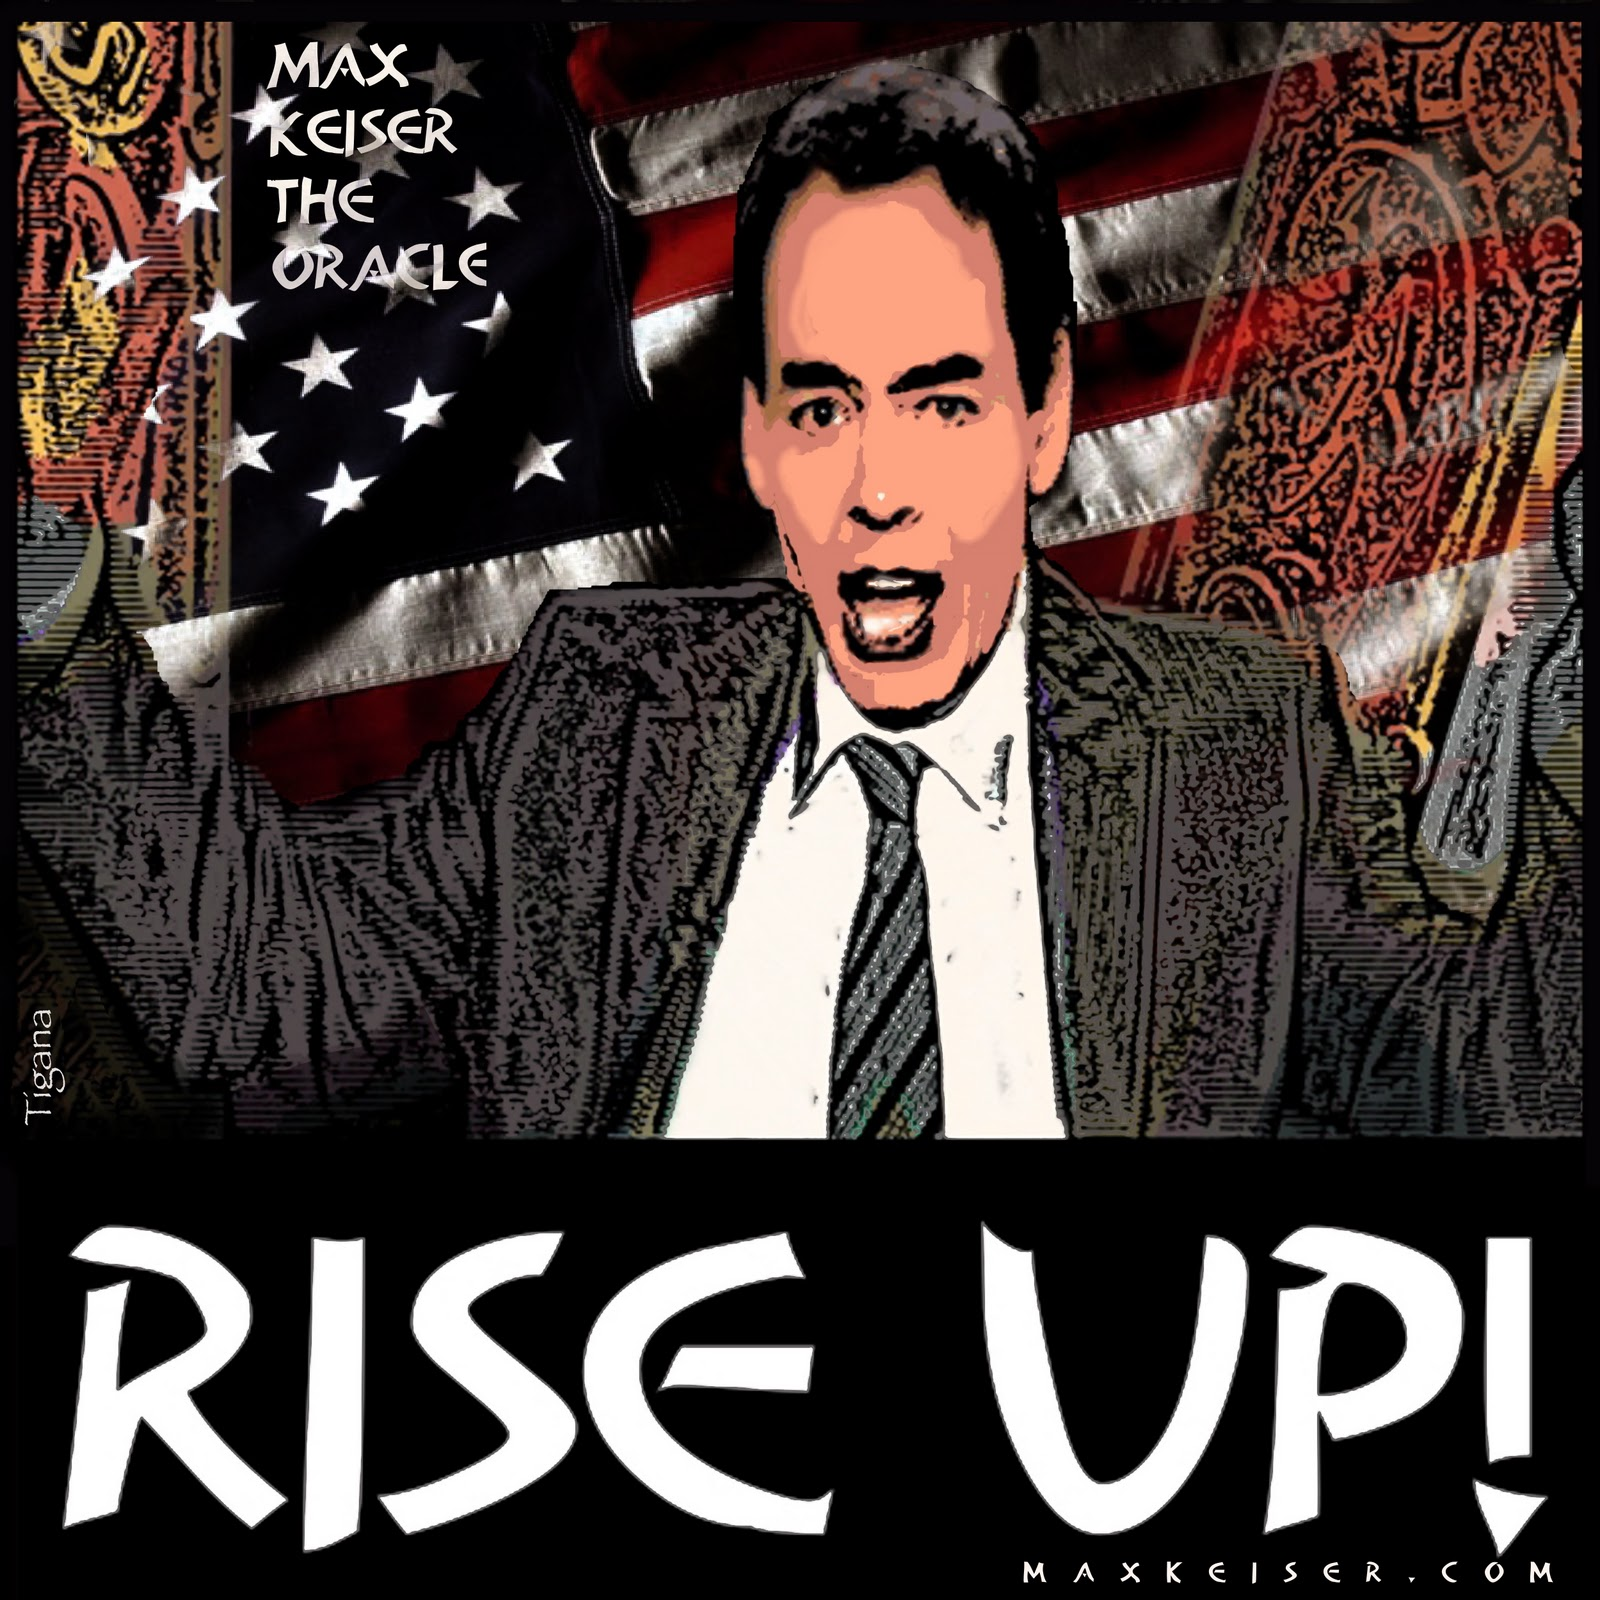 http://thephilandrist.files.wordpress.com/2011/12/tig-rise.jpg